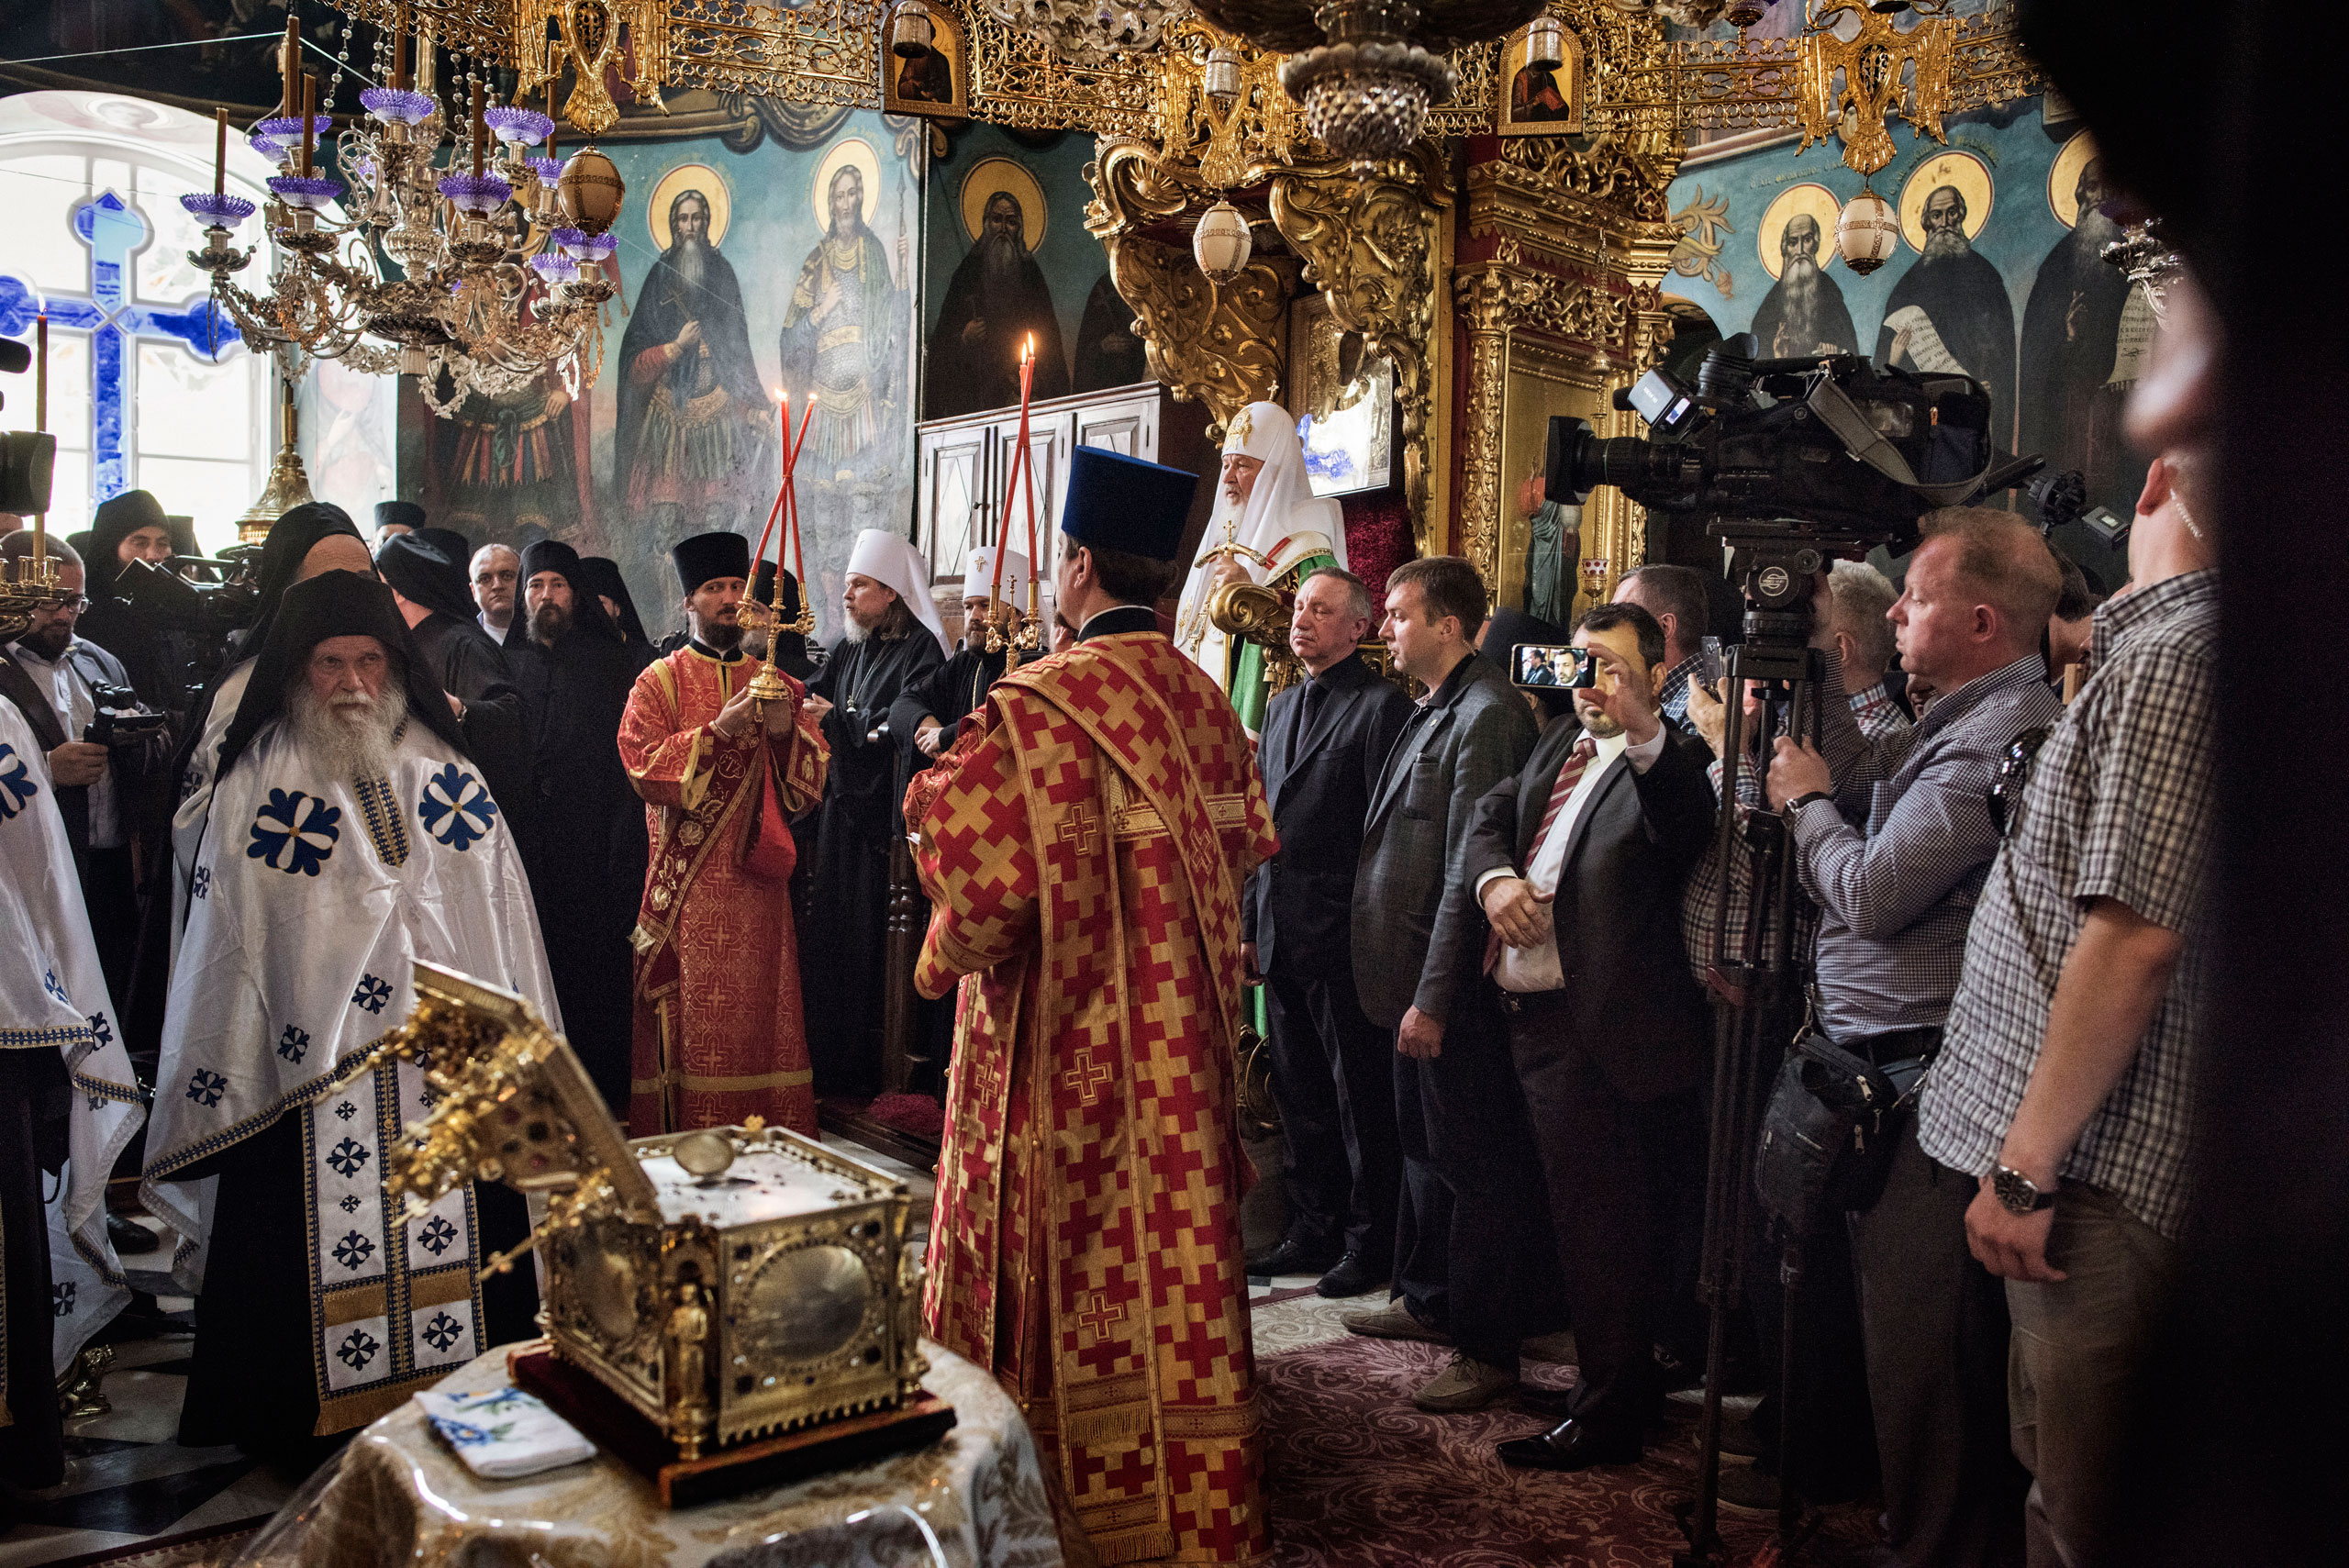 Patriarch Kirill (seated), the head of the Russian Orthodox Church, takes part in a prayer service at the Monastery of St. Panteleimon on Mount Athos, in northern Greece, May 27, 2016. Out of the 20 monasteries that comprise and govern the monastic community of Mount Athos, St. Panteleimon is the only one associated with the Russian Orthodox Church.